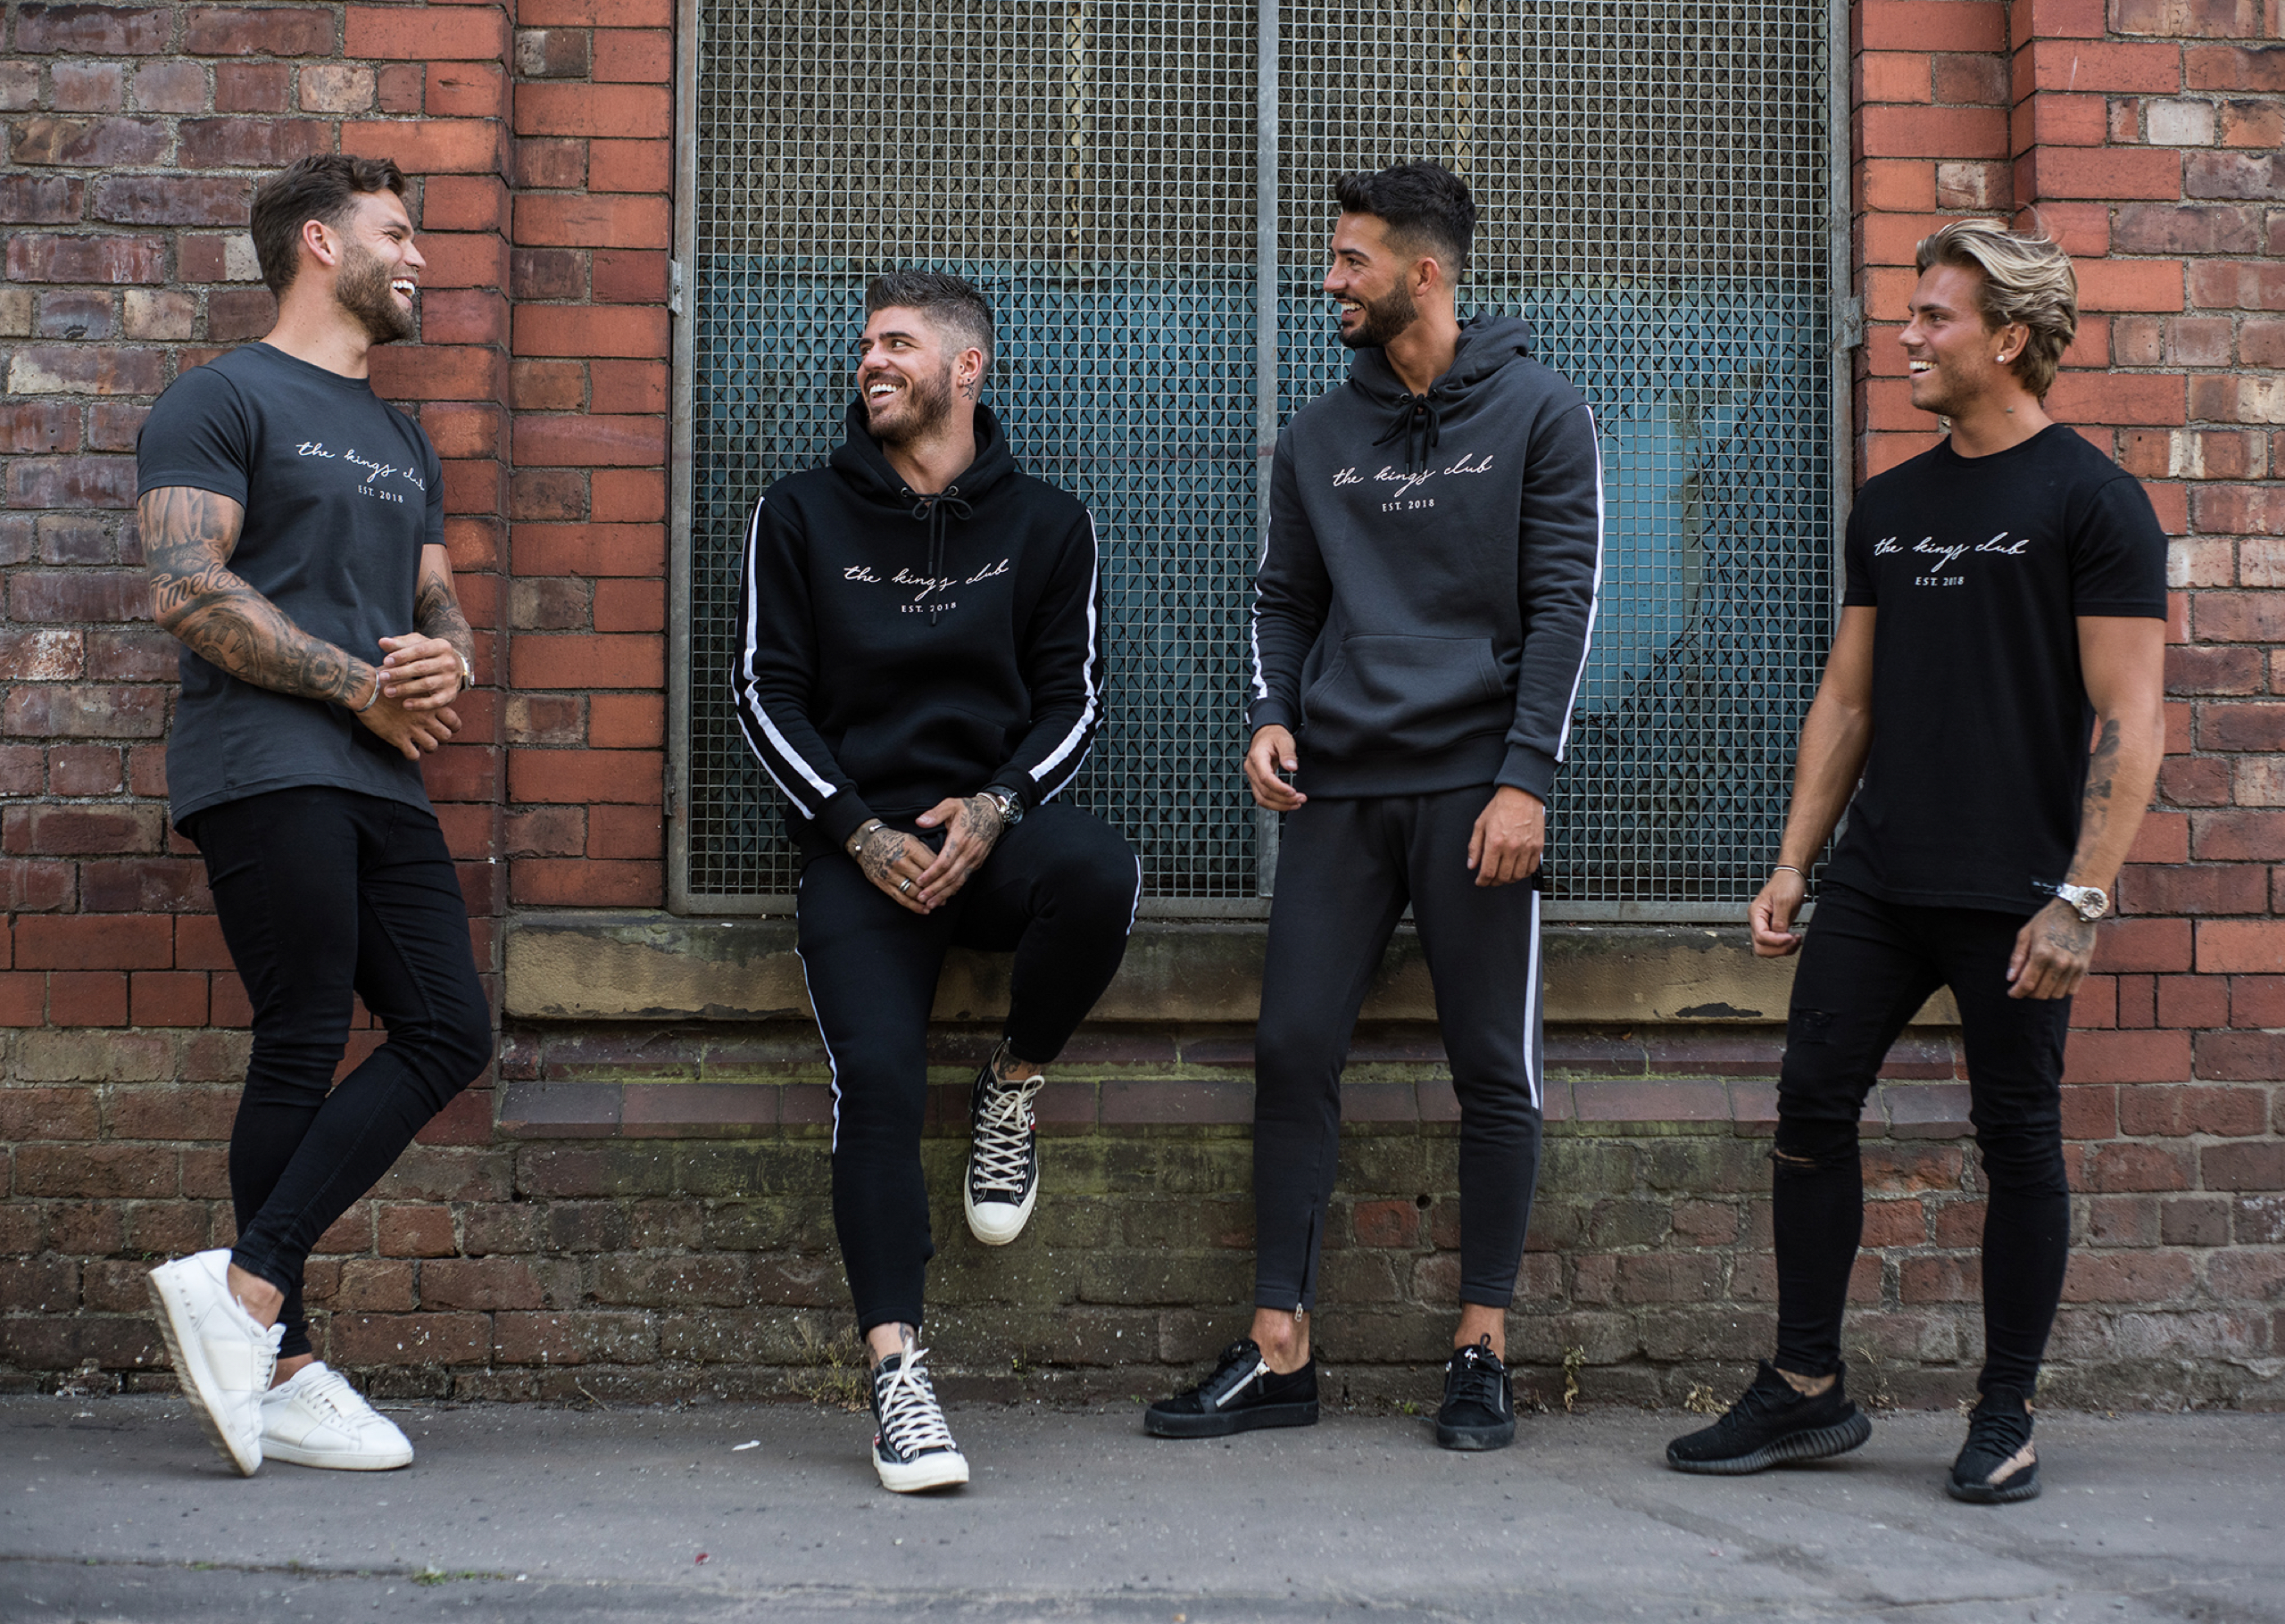 Dom Lever, Sam Reece, Dean Overson and Jordi Whitworth wearing The Kings Club clothing